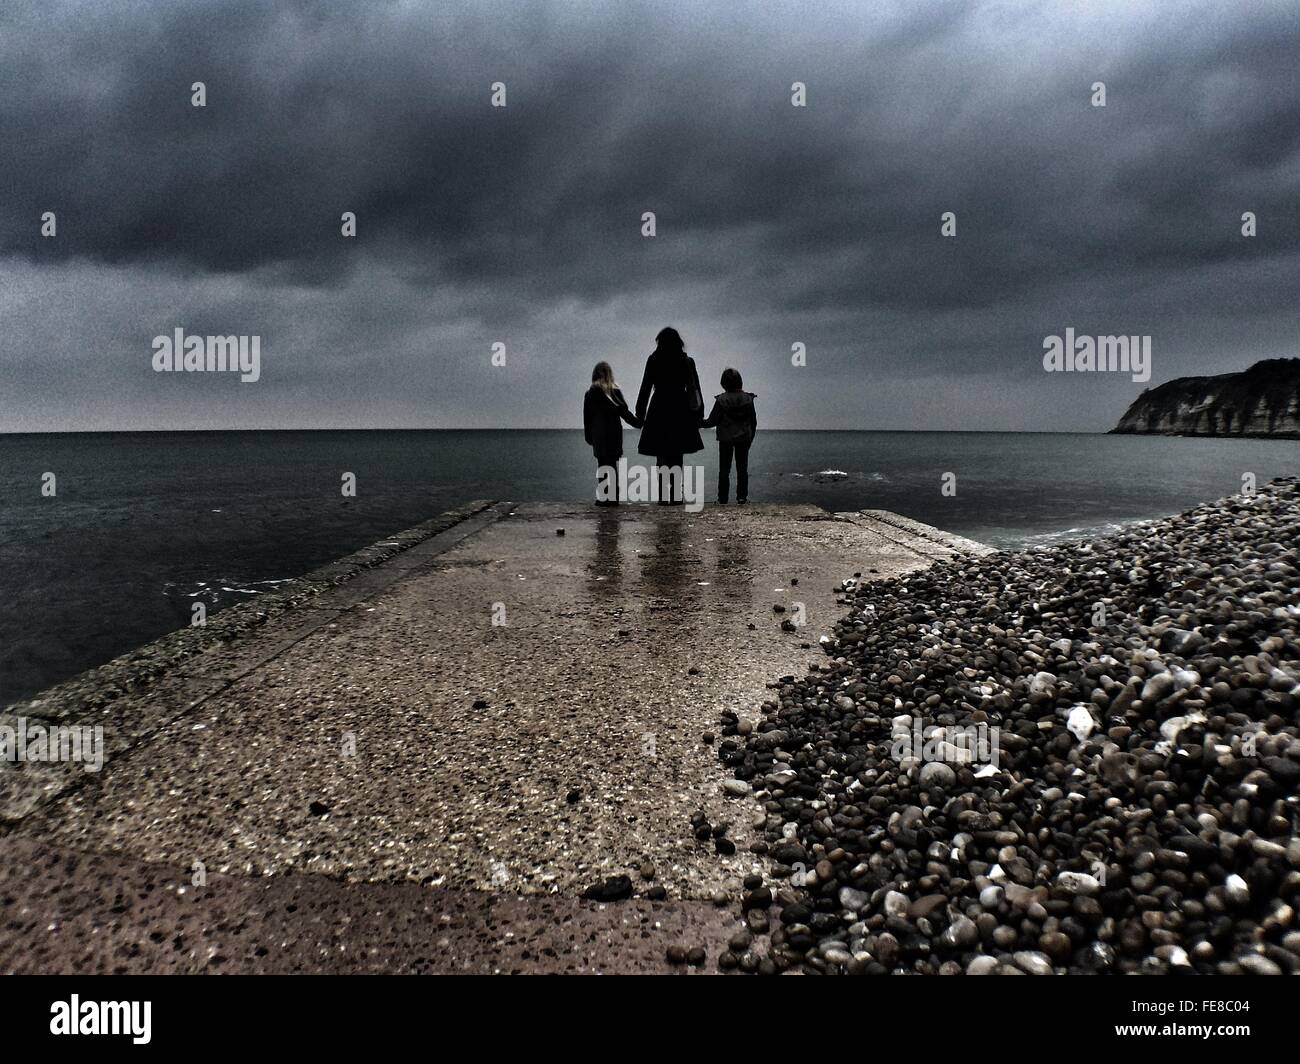 Silhouette Of Mother With Children At Beach Coastline - Stock Image